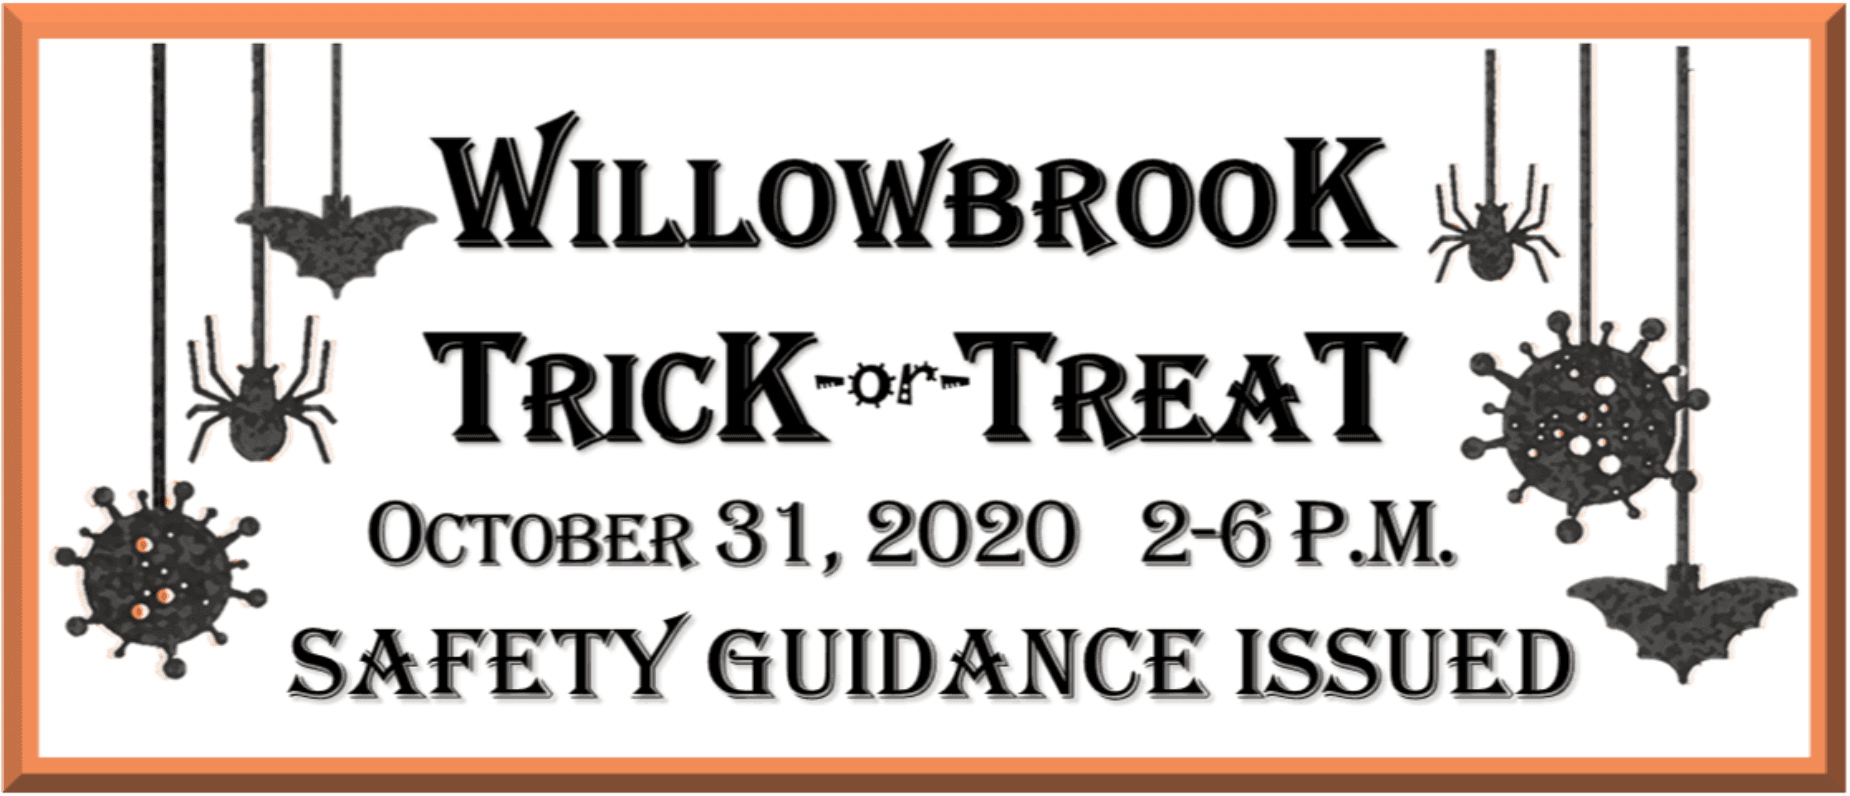 halloween 2020 slideshow